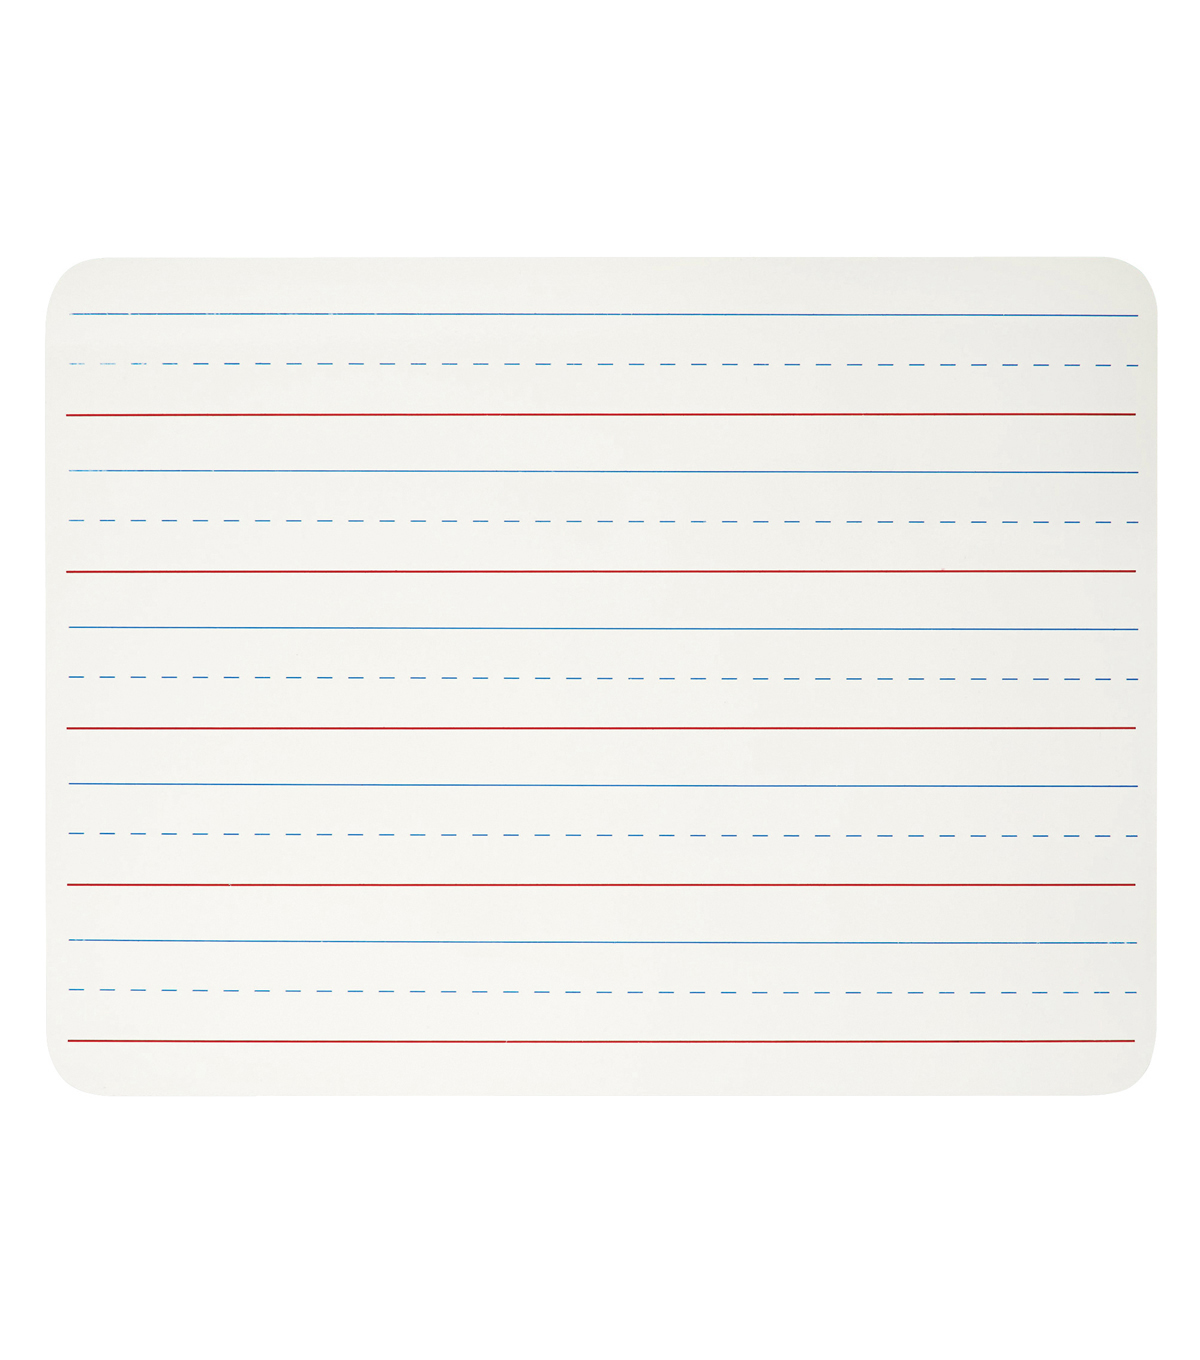 Charles Leonard Dry Erase Lap Board, 1-Sided Lined, 9\u0022 x 12\u0022, Pack of 12